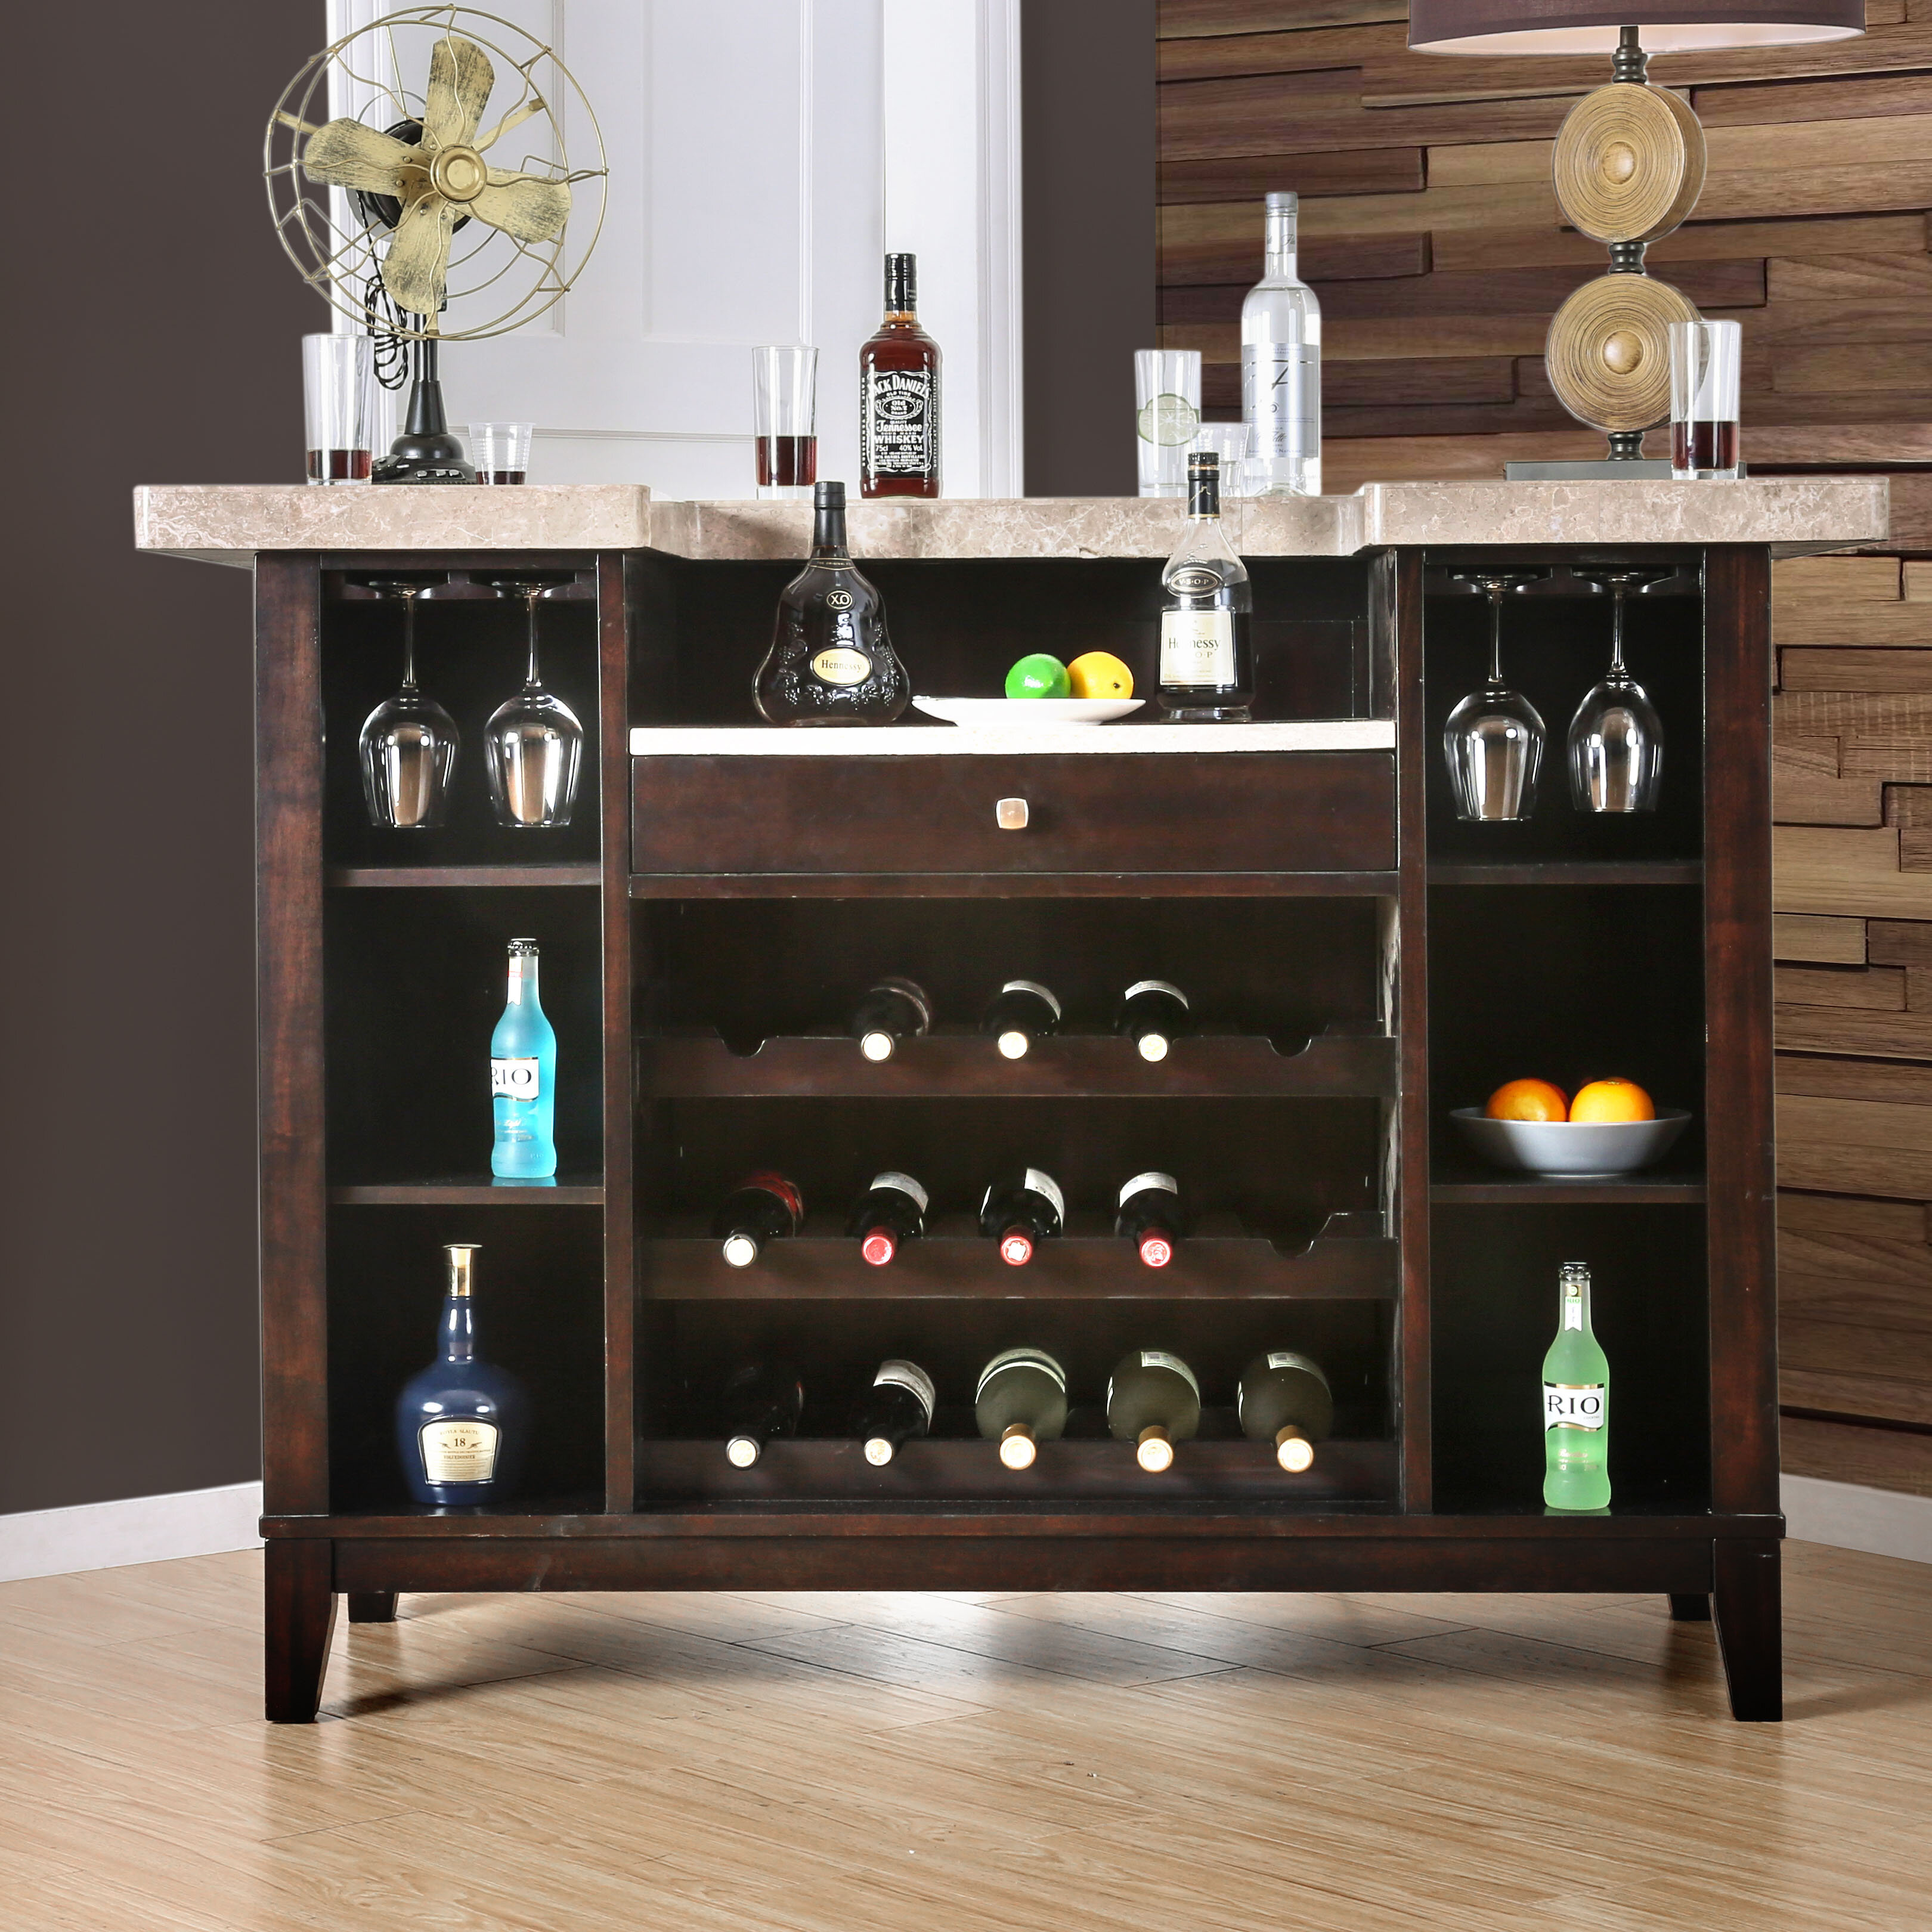 & Darby Home Co Du0027Amato Transitional Bar Table with Wine Storage | Wayfair